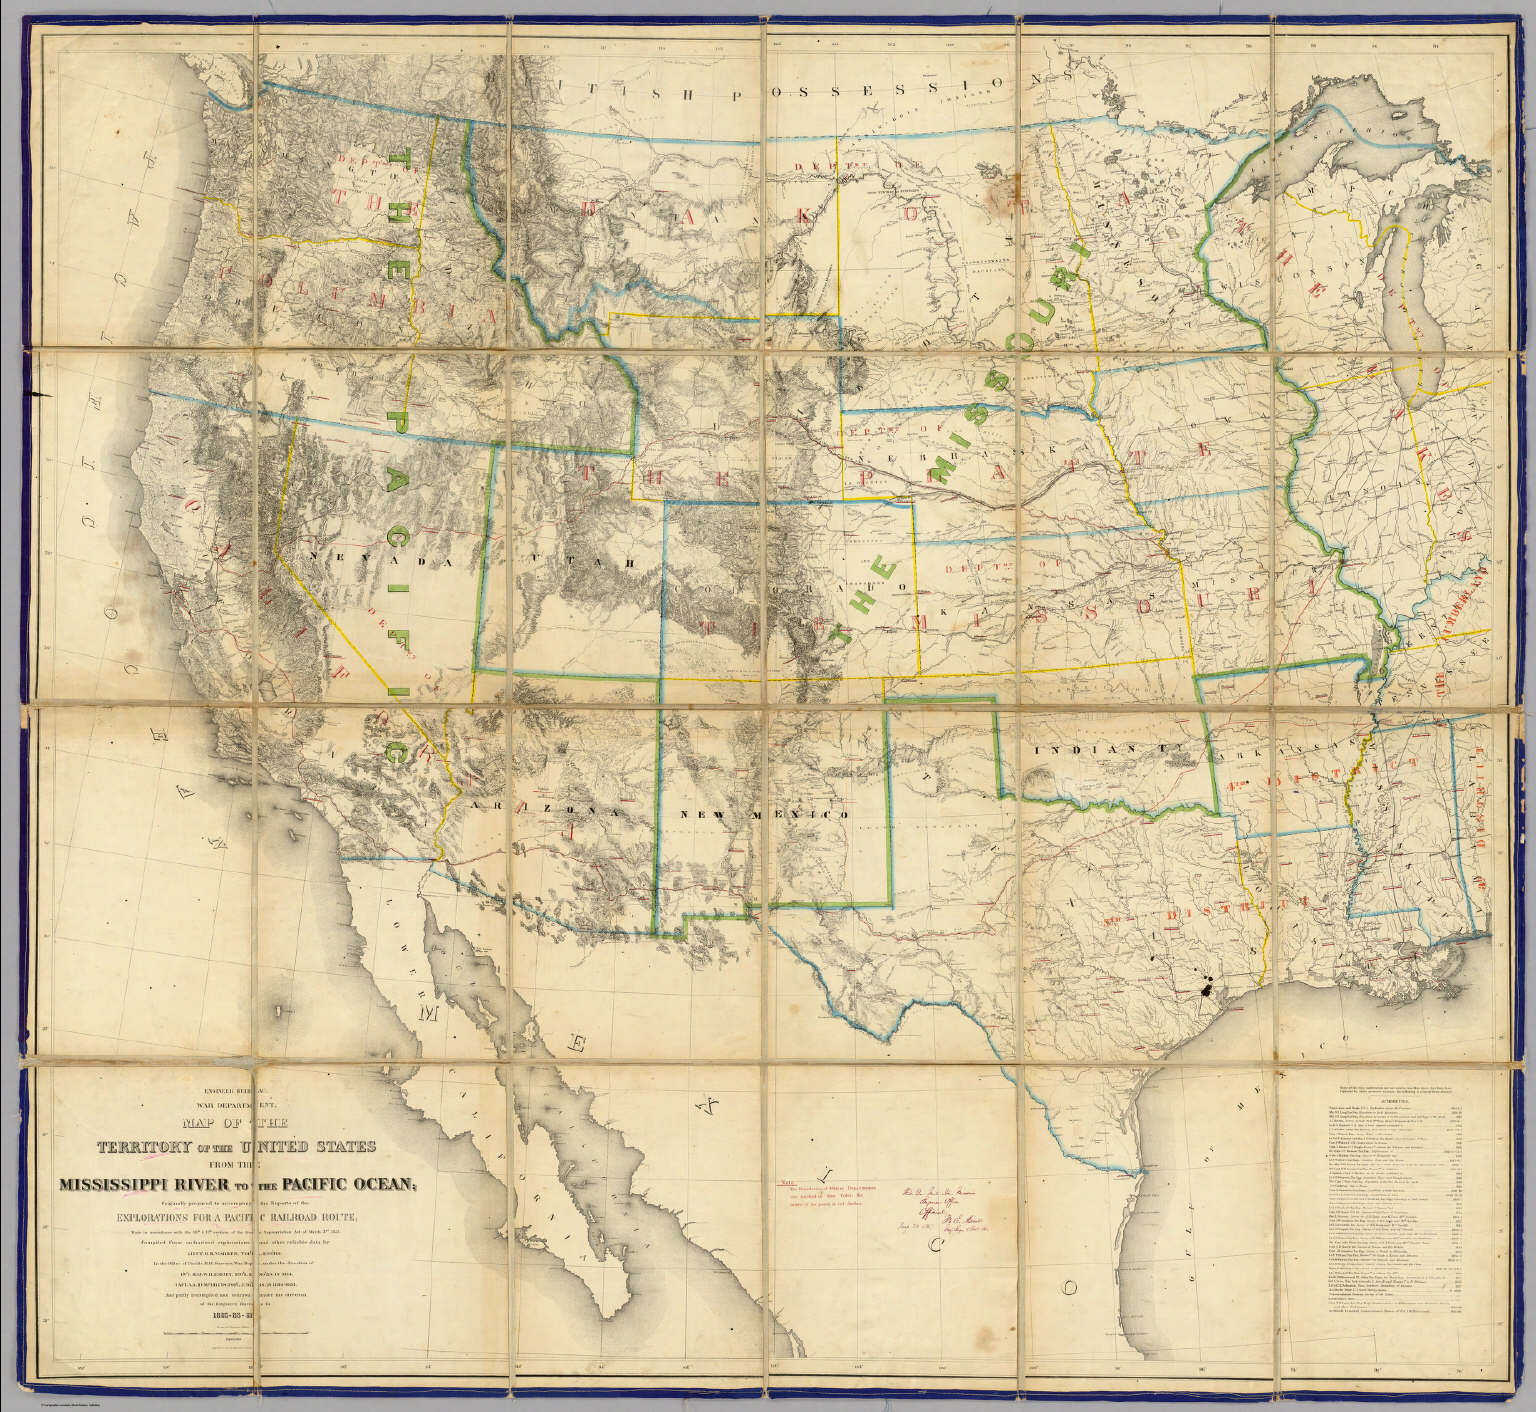 map of the territory of the united states from the mississippi river to the pacific ocean